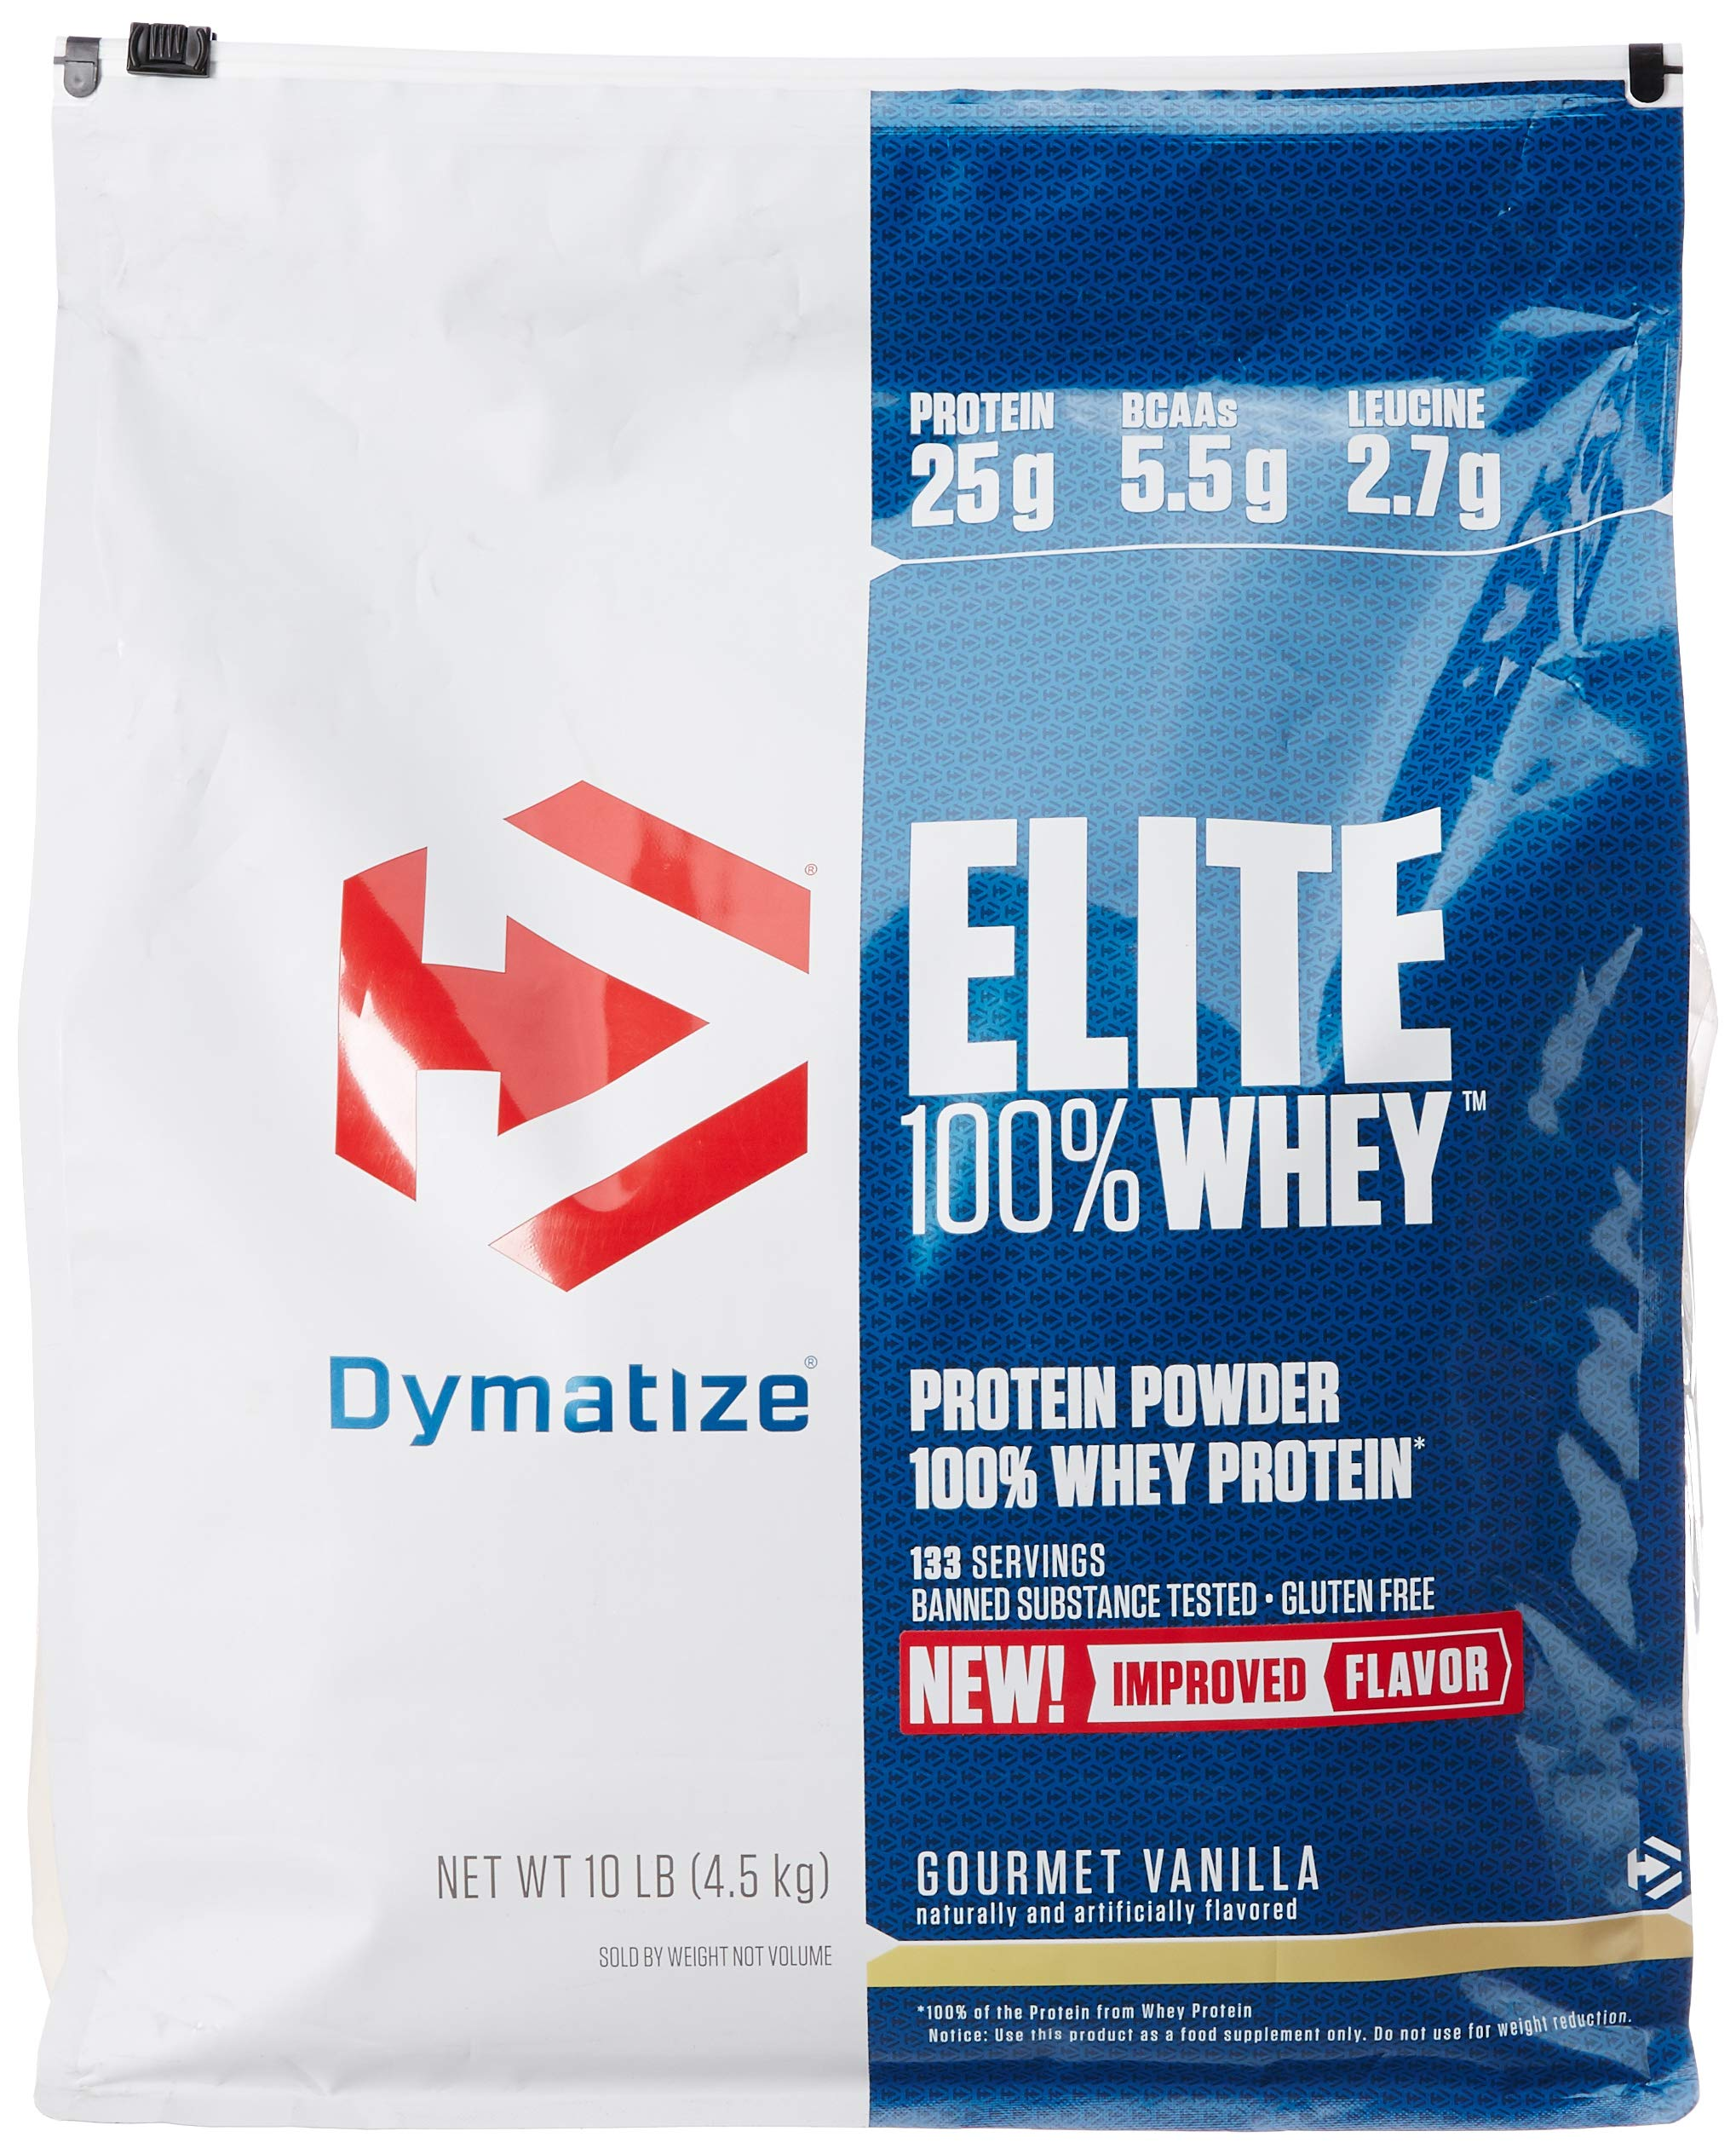 Dymatize Elite 100% Whey Protein Powder, Take Pre Workout or Post Workout, Quick Absorbing & Fast Digesting, Gourmet Vanilla, 10 Pound by Dymatize (Image #1)